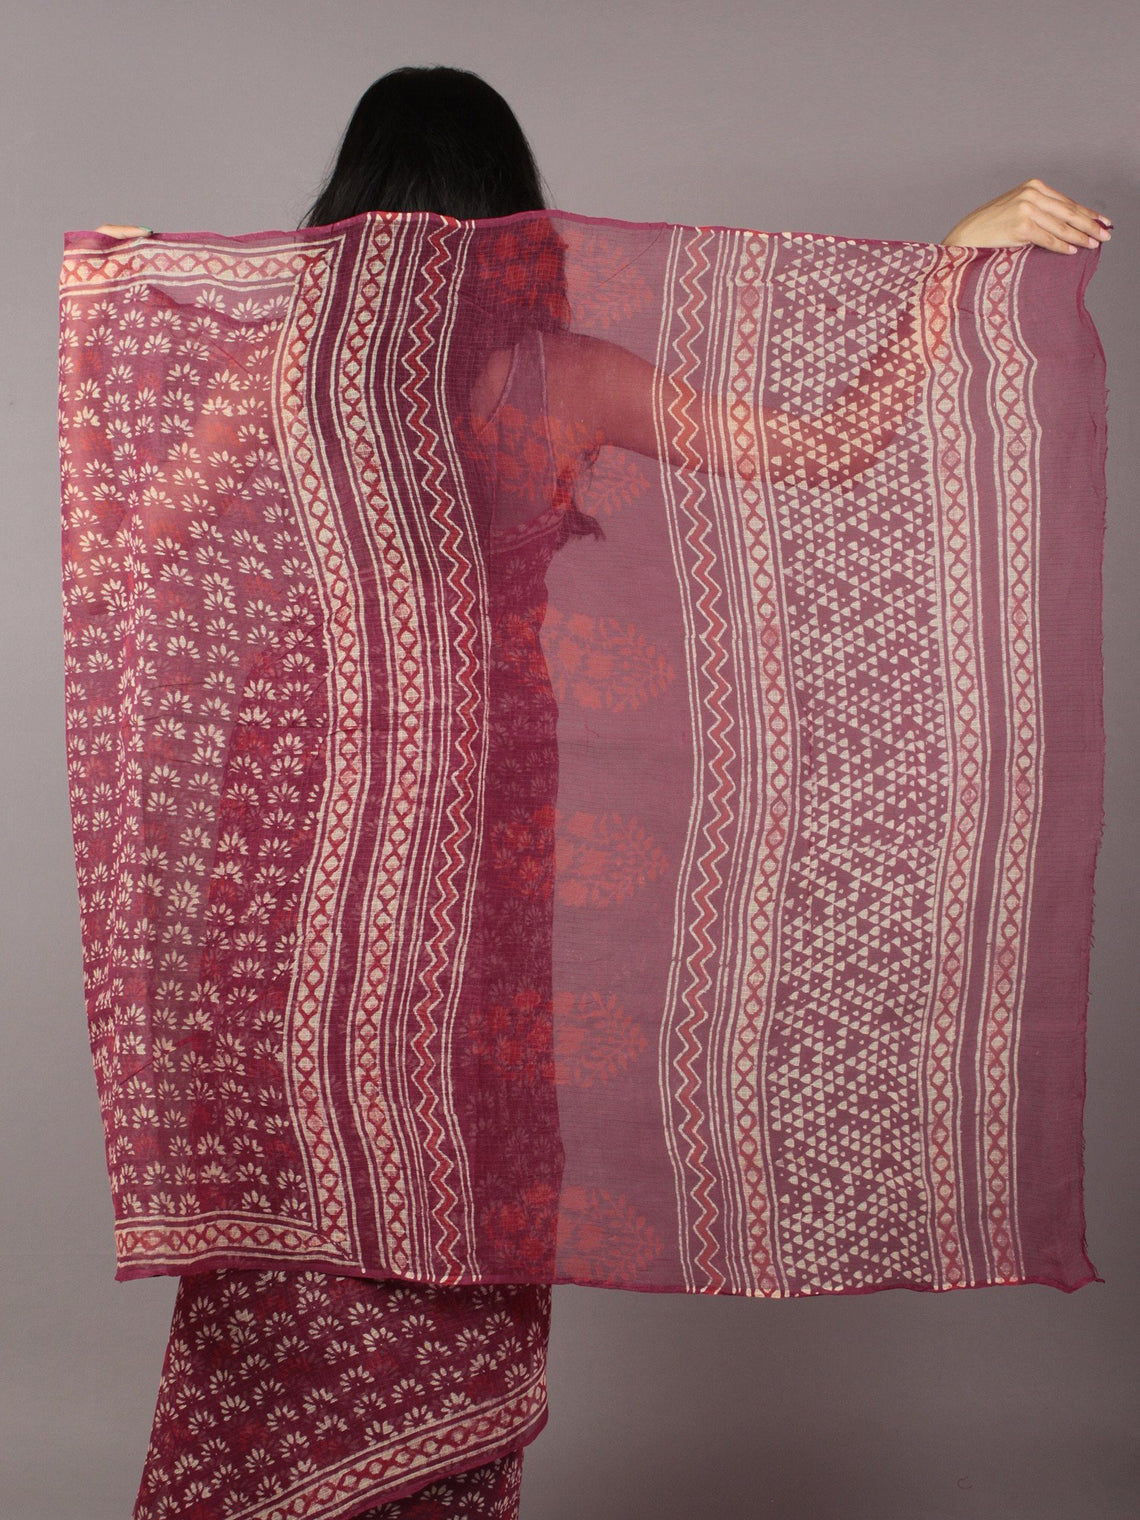 Maroon Ivory Hand Block Printed Kota Doria Saree in Natural Colors - S031701789